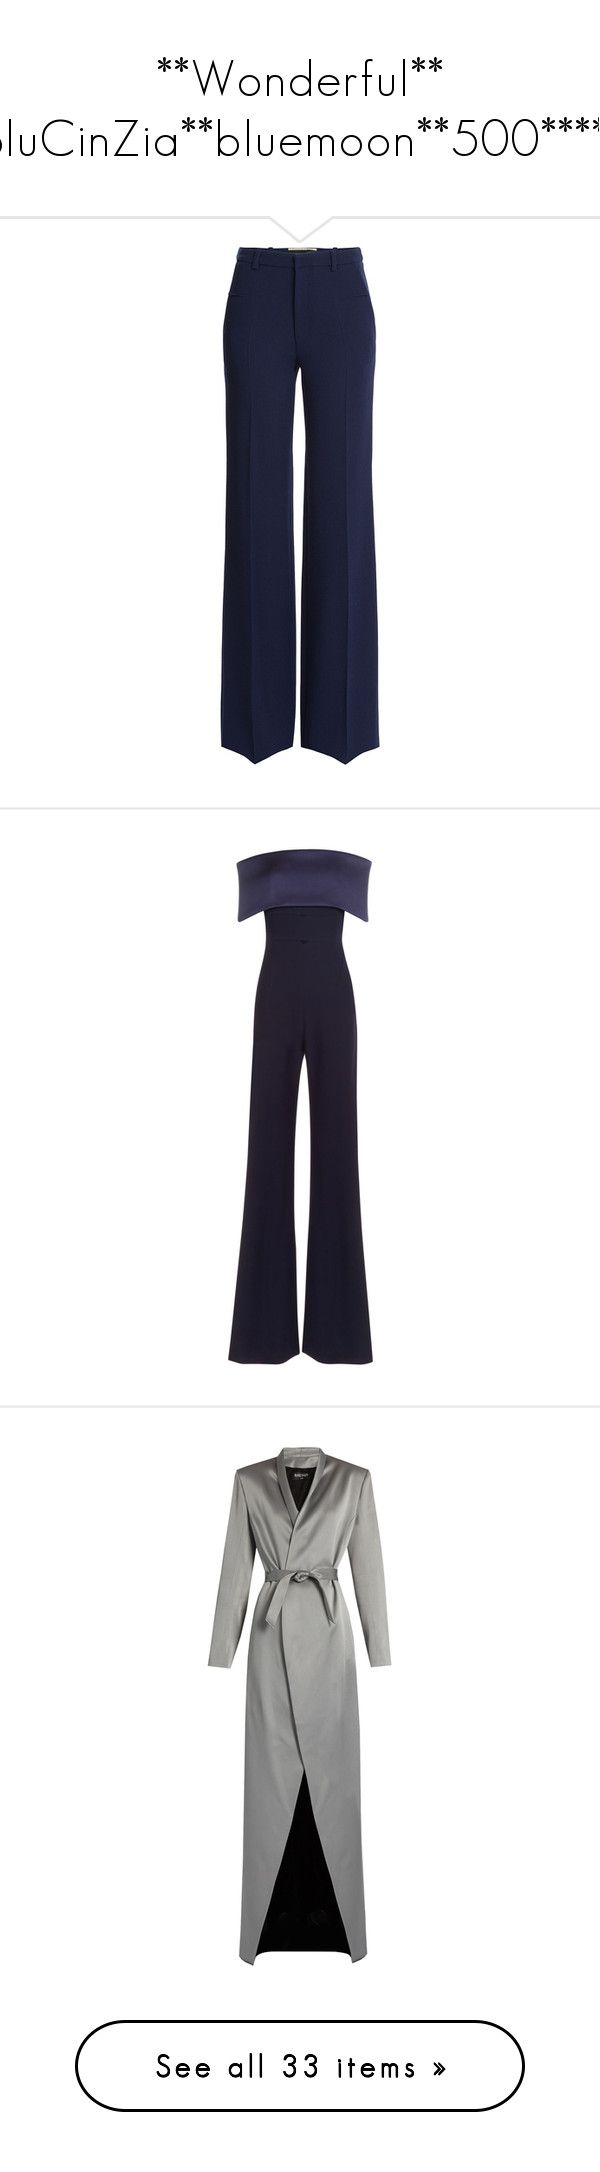 """**Wonderful** BluCinZia**bluemoon**500*****"" by bluemoon ❤ liked on Polyvore featuring pants, trousers, bottoms, roland mouret, blue, zipper trousers, blue pants, zipper pants, wool pants and slim fit trousers"